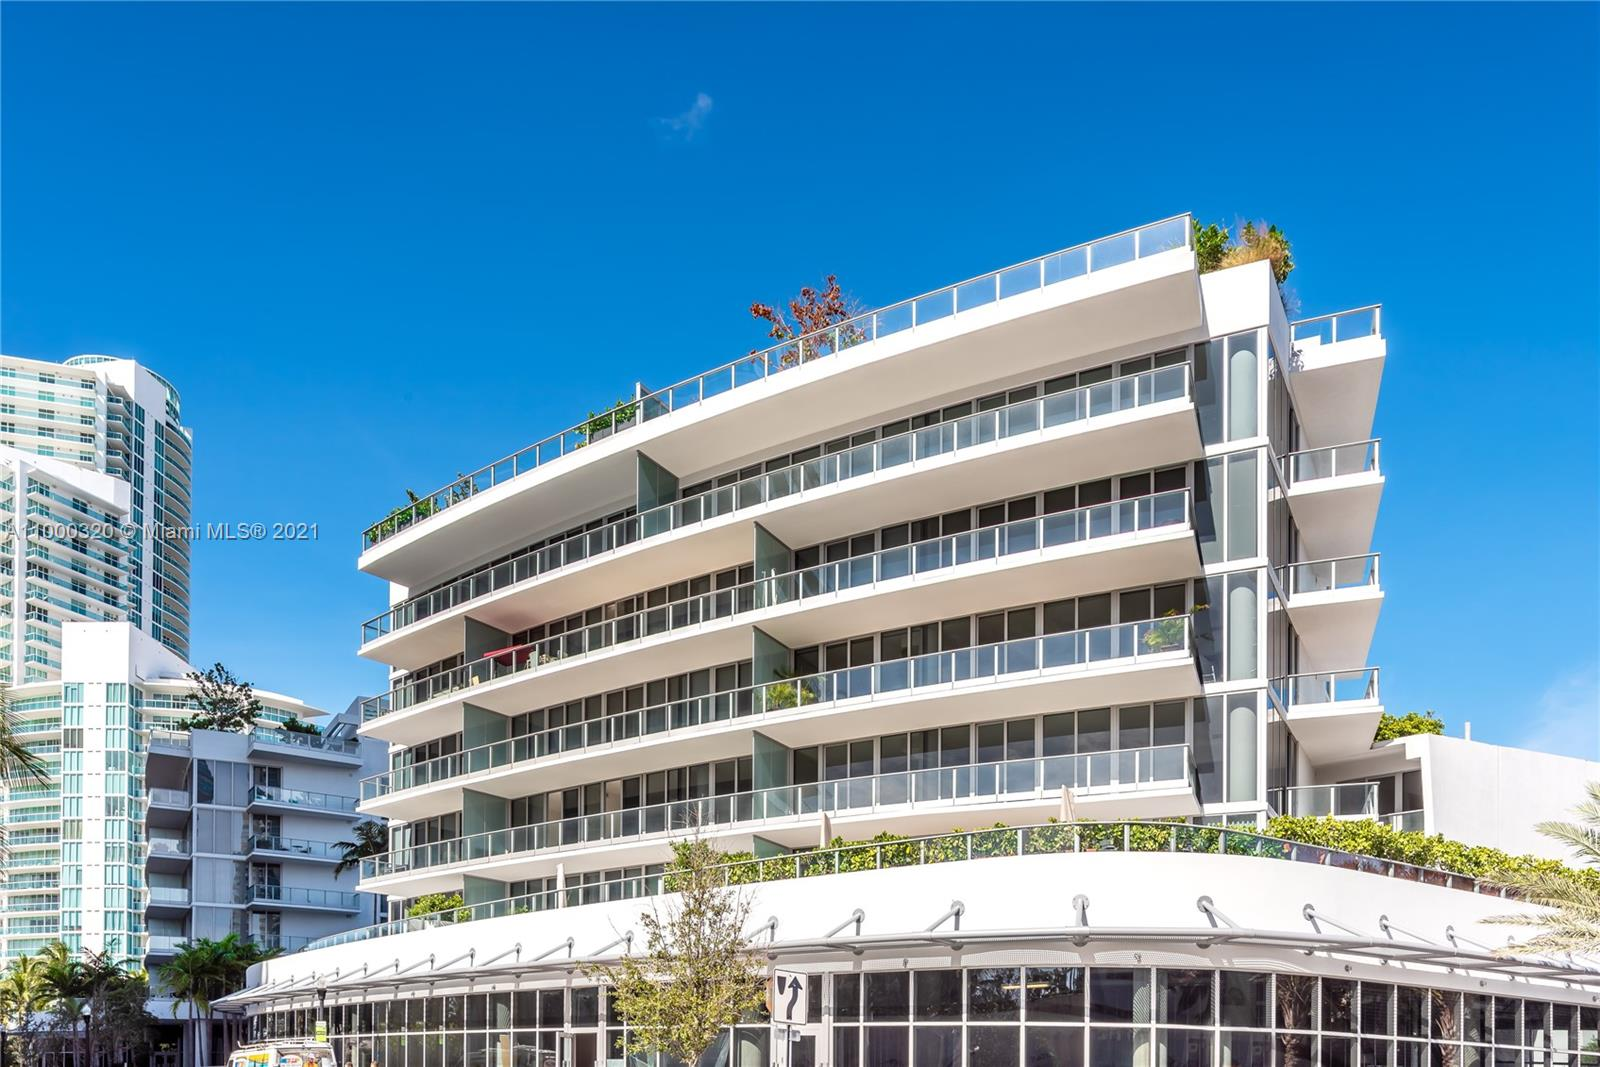 ENJOY BOUTIQUE SOUTH OF 5TH STREET LIVING in Light & Airy 2 bedroom corner residence. Elegant with warm finishes unit at the exclusive boutique Marea condo in the heart of South Beach. Residence offers large terraces & beautiful views of Palm Trees & Bay. Features an open floor plan w/ Oakwood floors throughout. A private elevator opens to the unit, island kitchen w/Subzero, Wolf & Asko appliances and Wine Storage. Designed by Sieger- Suarez Architects, Yabu Pushelberg & Enzo Enea. This amazing unit is an oasis of tranquility in the most desirable neighborhood, South of 5th. Only 30 residences w/inviting rooftop pool, Jacuzzi & lounge area, gym, spa out the back door of your unit. Across the street from Joe's Stone Crab, minutes to fine shops & entertainment.